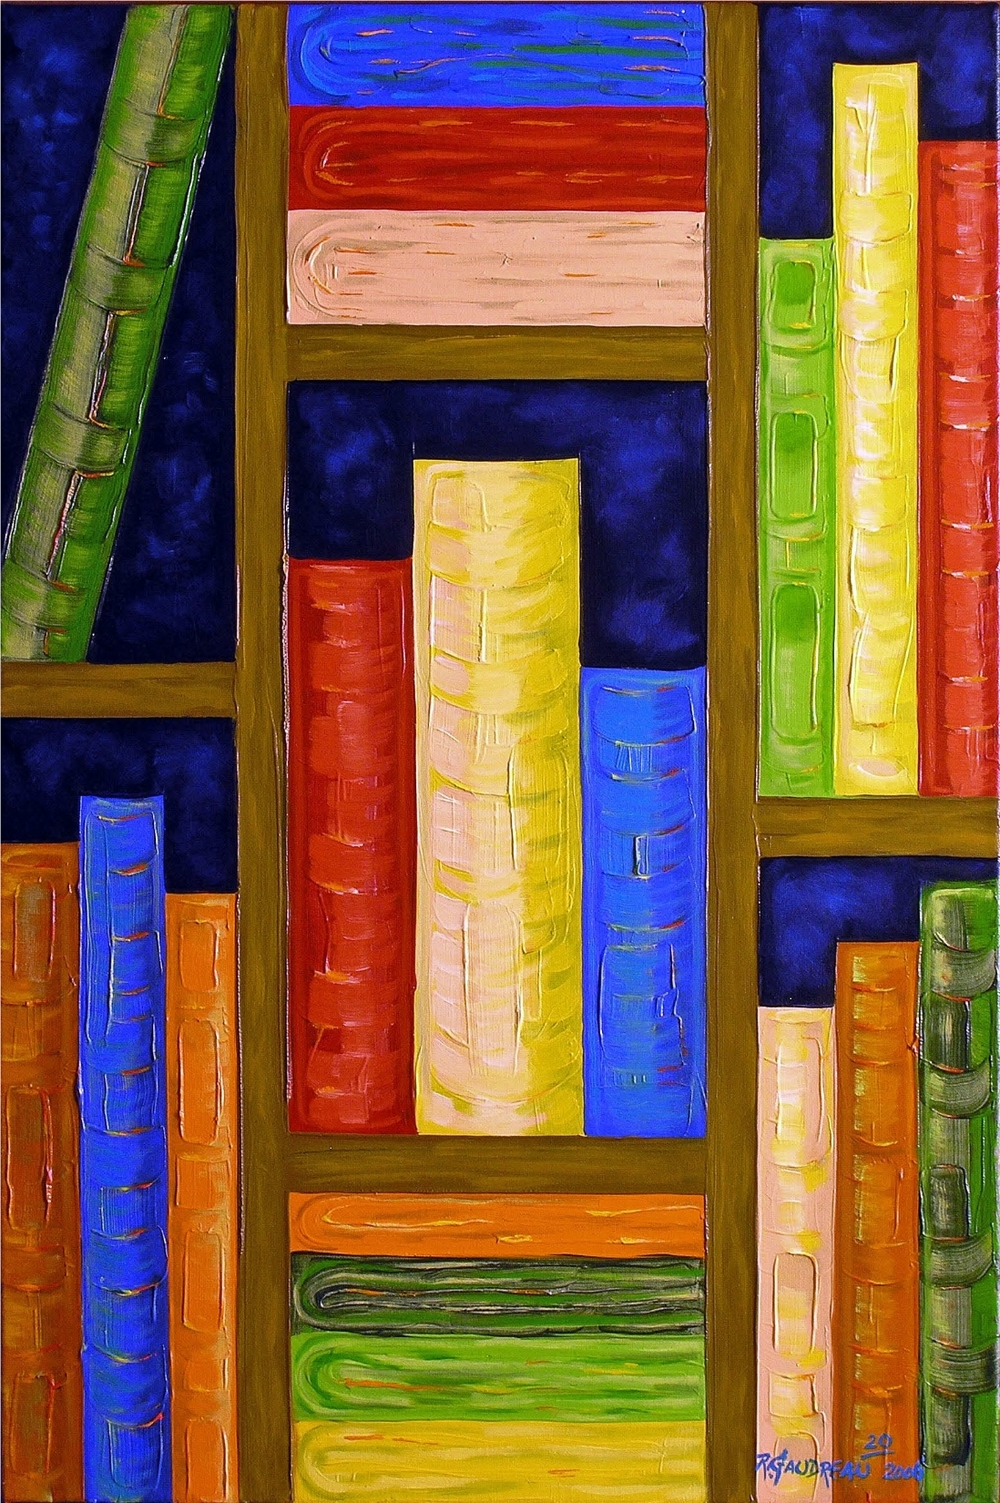 20  Books 2006 oil on canvas 36 x 24 inches